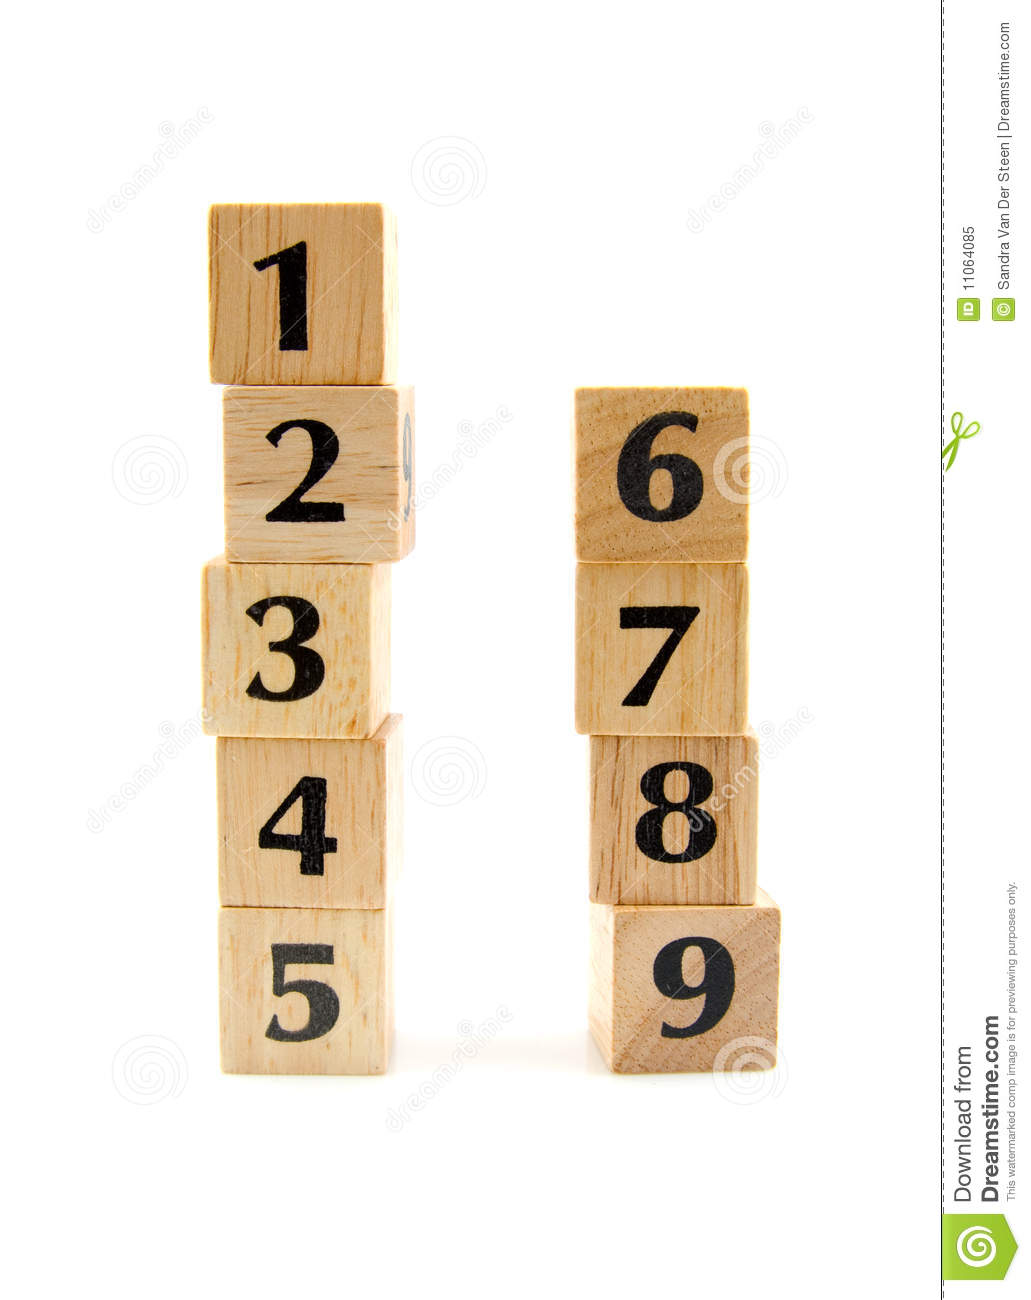 Stacked Wooden Blocks With Numbers Royalty Free Stock ...